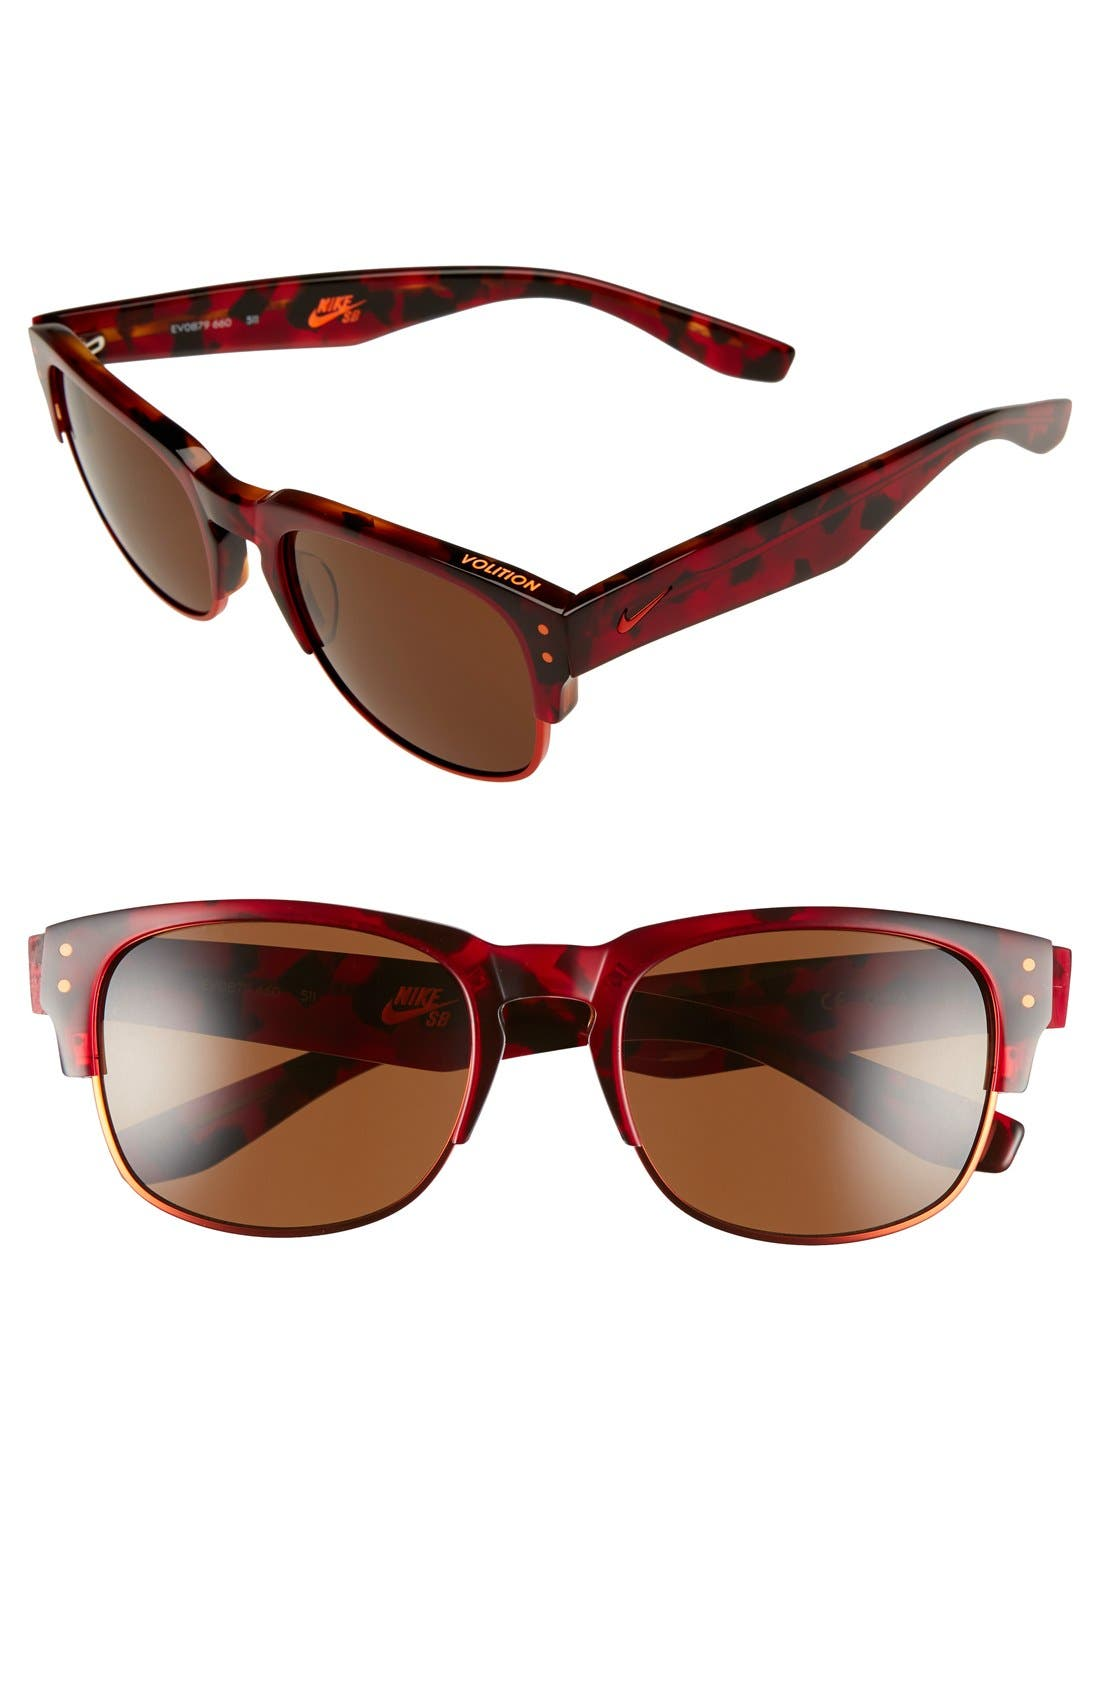 Volition 54mm Sunglasses,                             Main thumbnail 1, color,                             RED TORTOISE